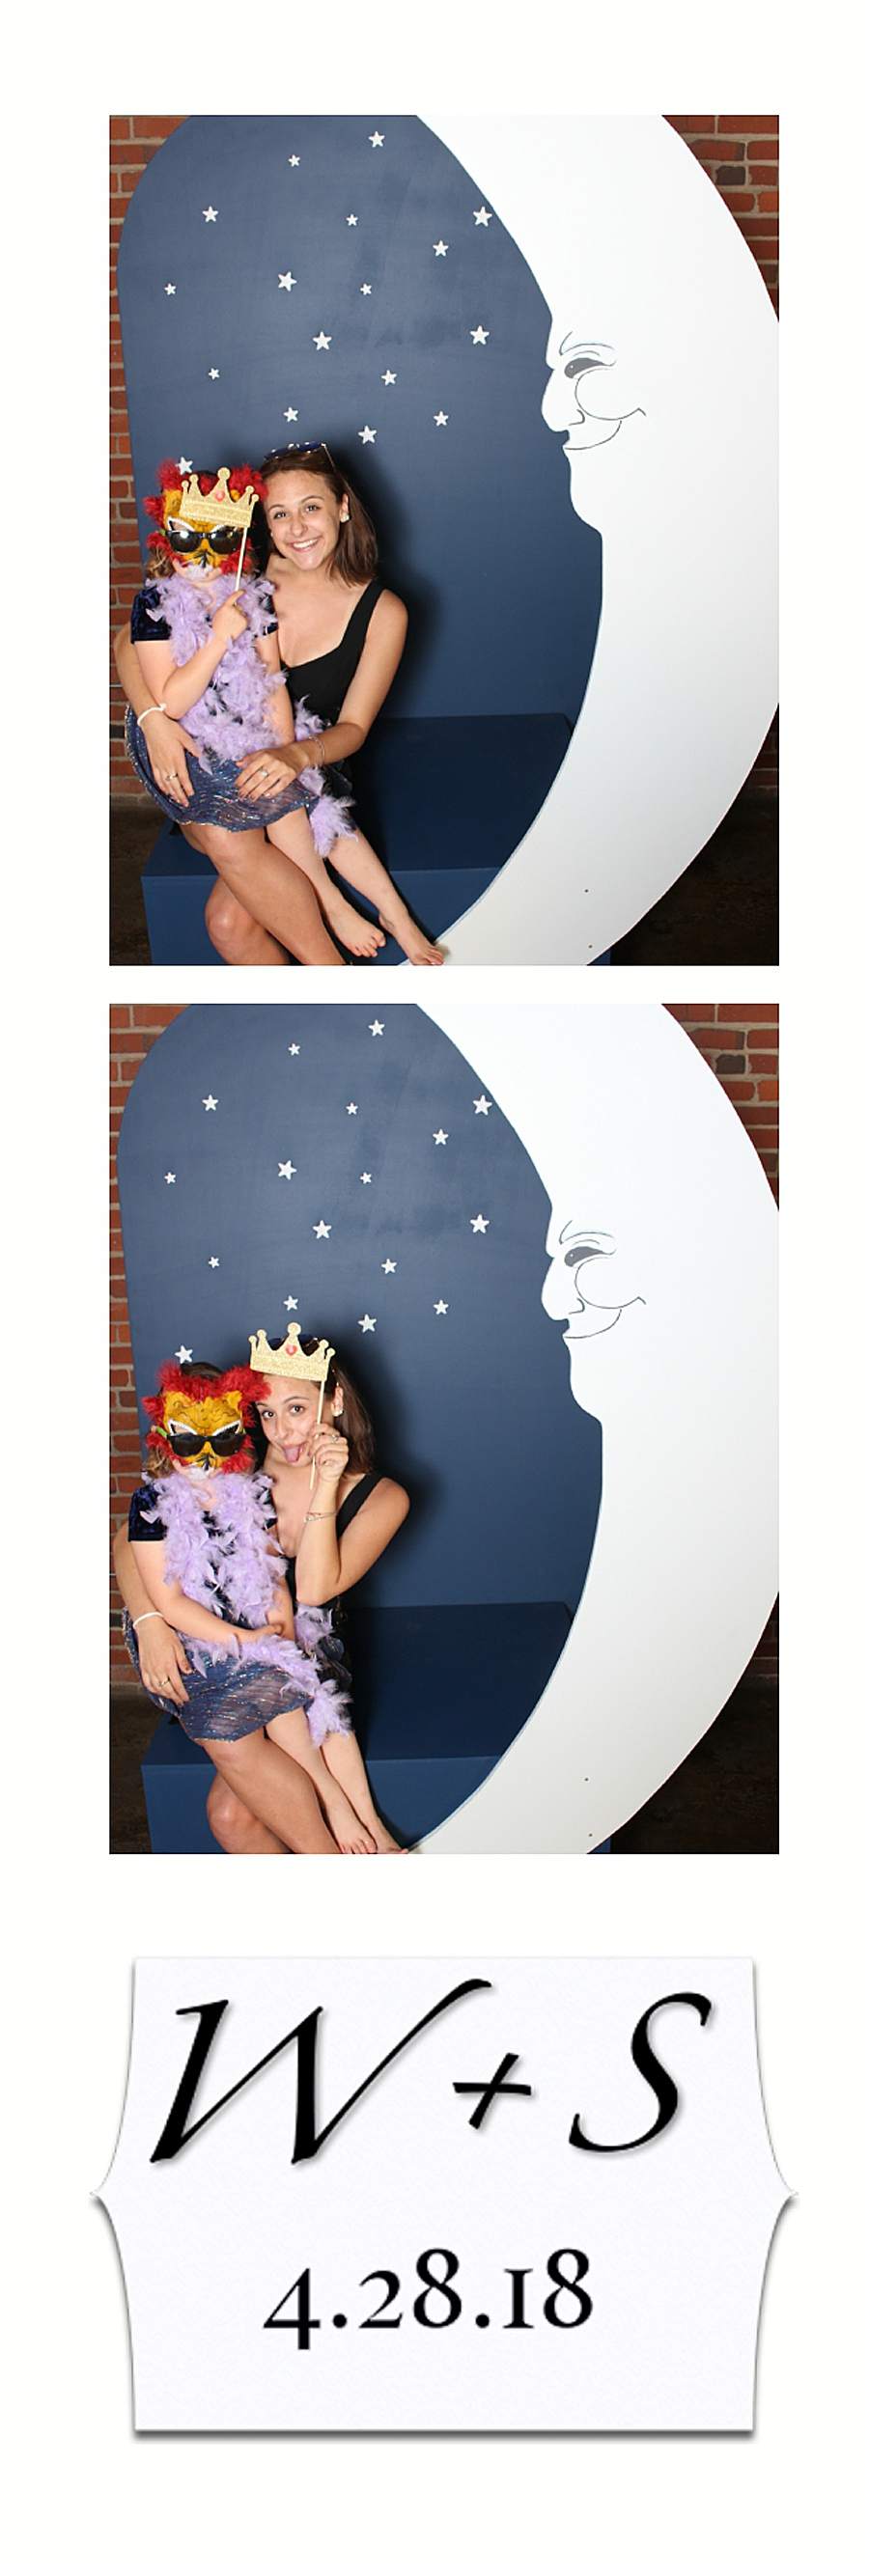 Knoxville Photo Booth_1697.jpg